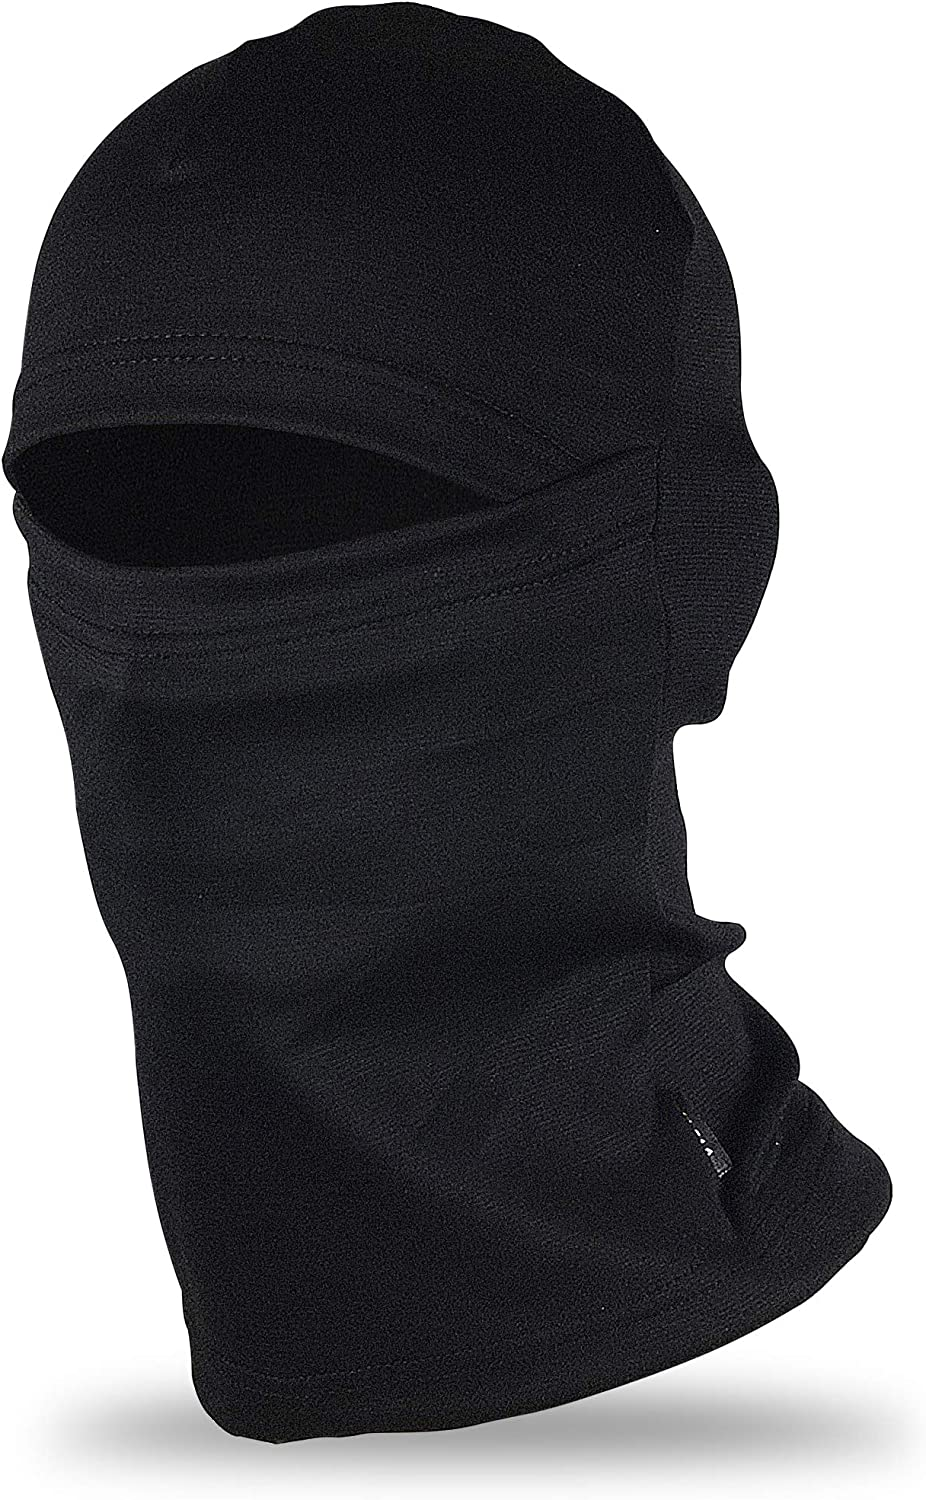 M-Tac Mens Military and Tactical Motorcycle Balaclava Cotton